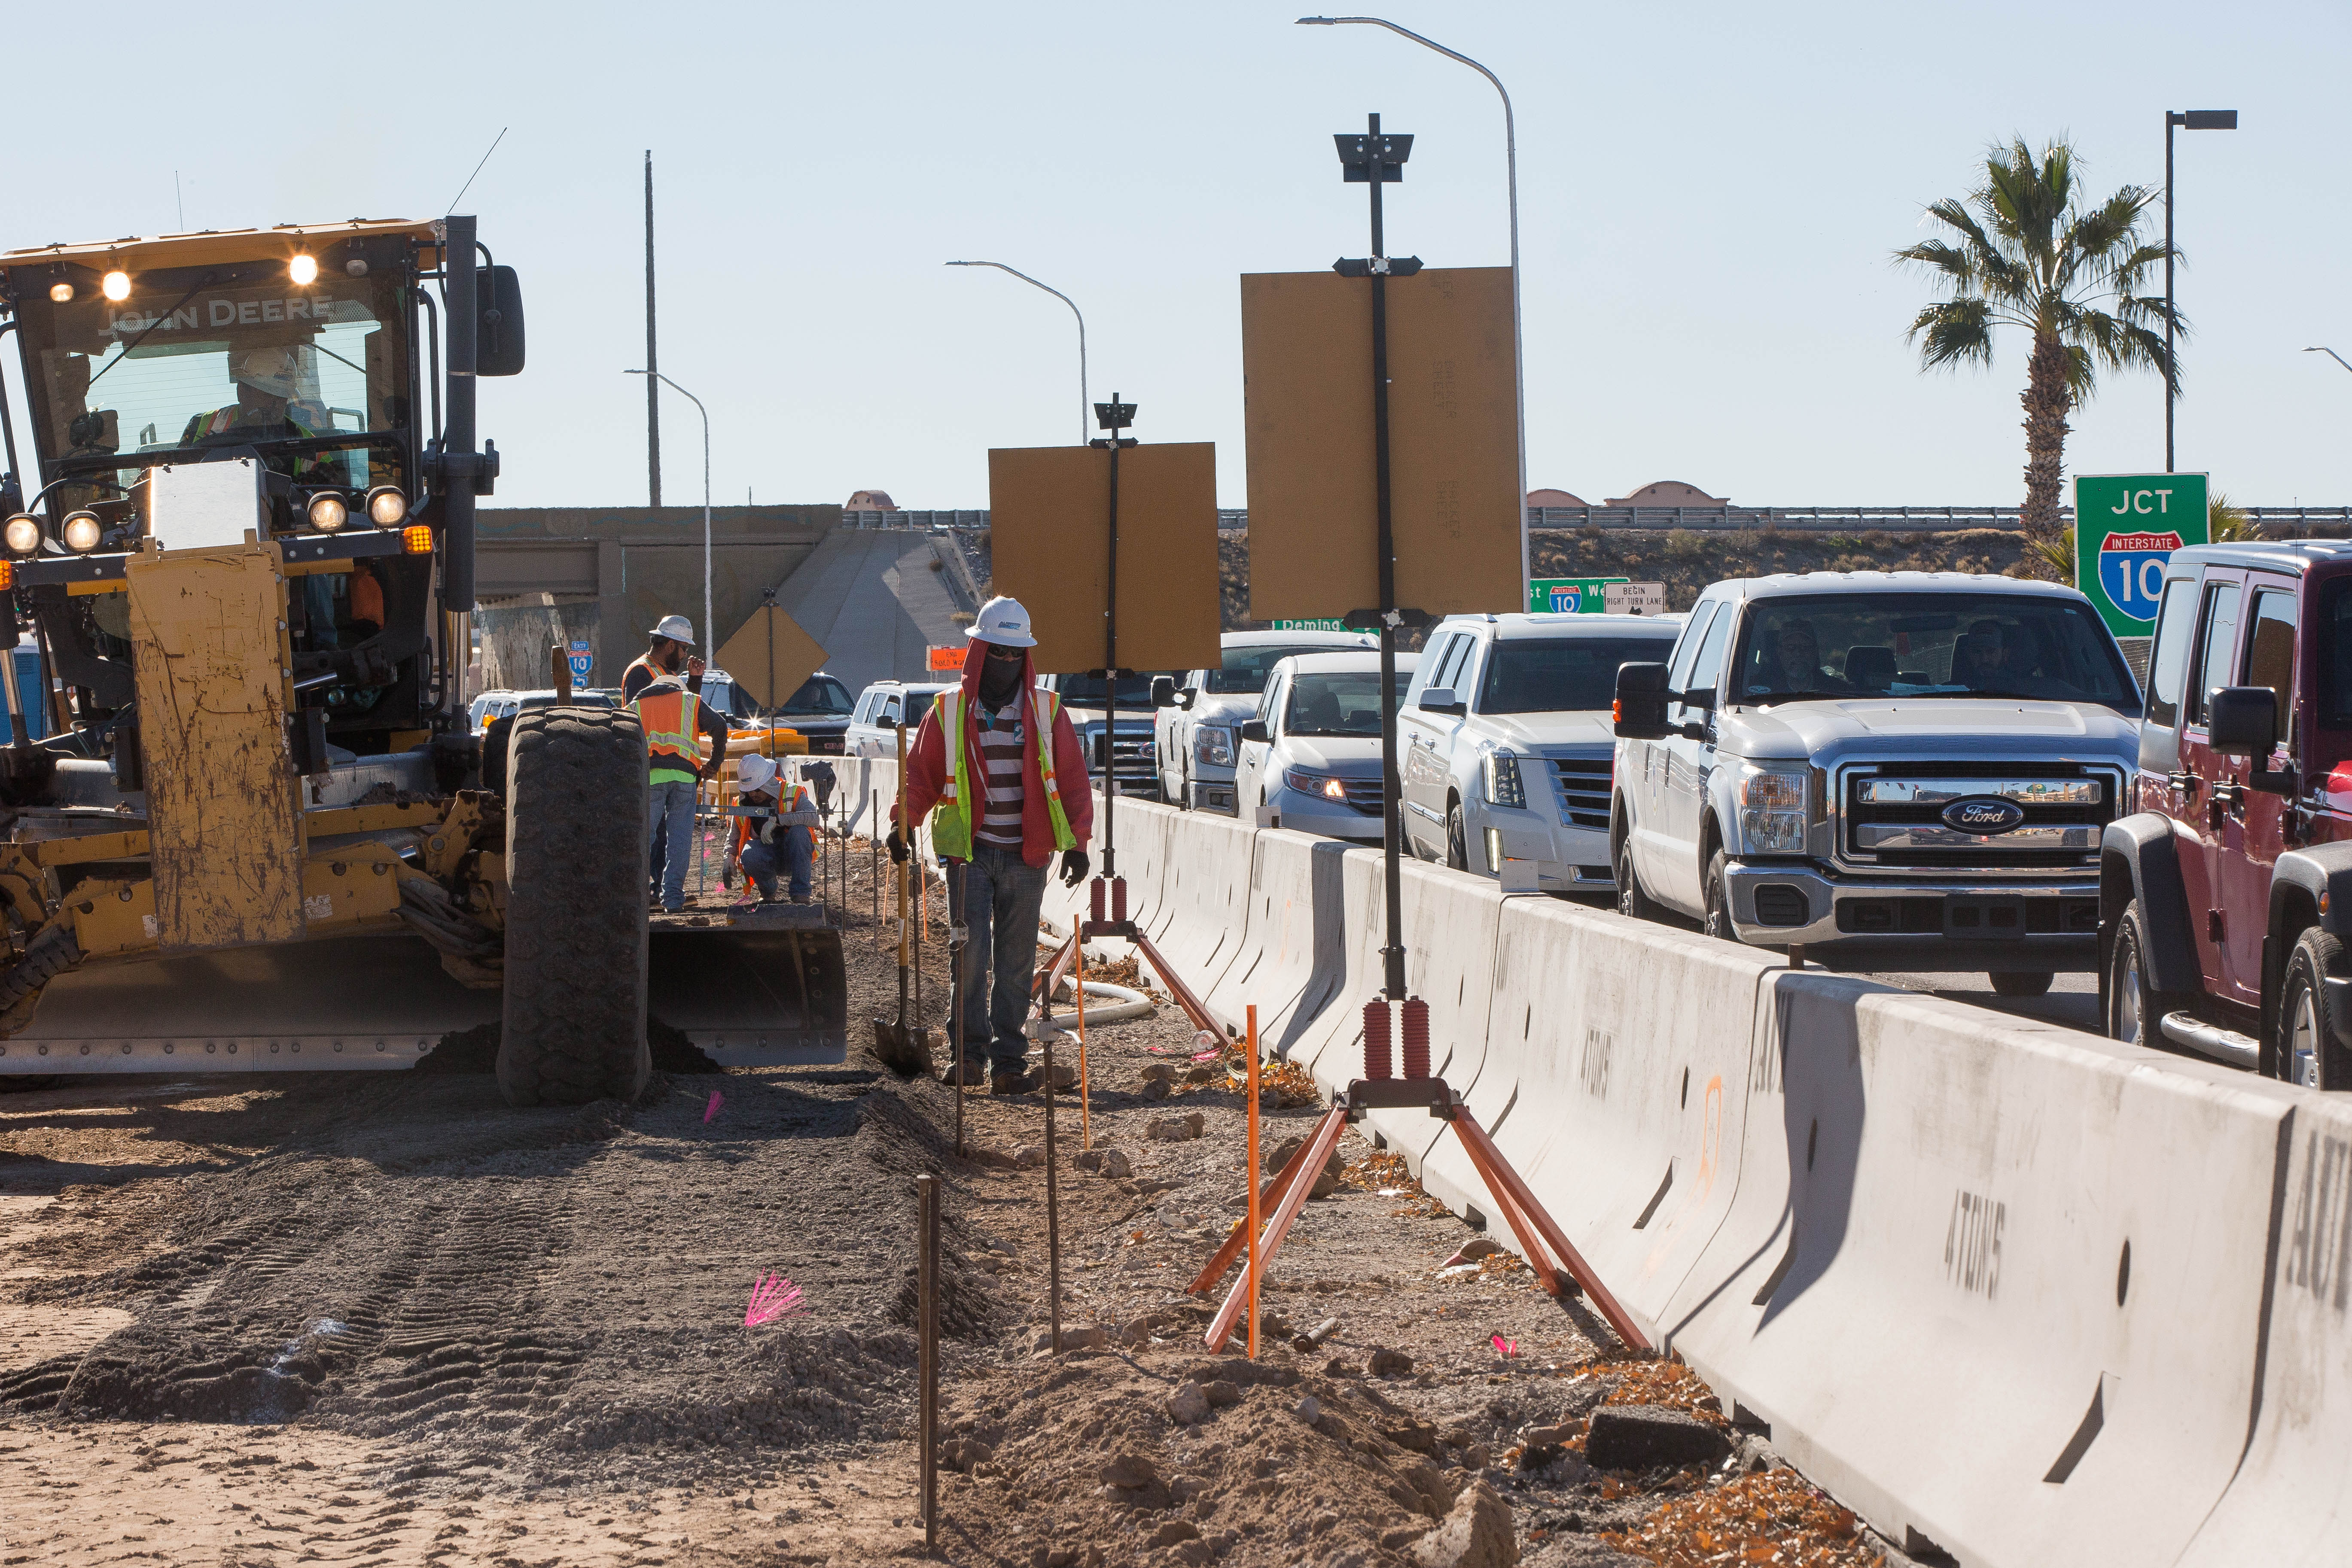 State hoping to accelerate Valley Drive construction